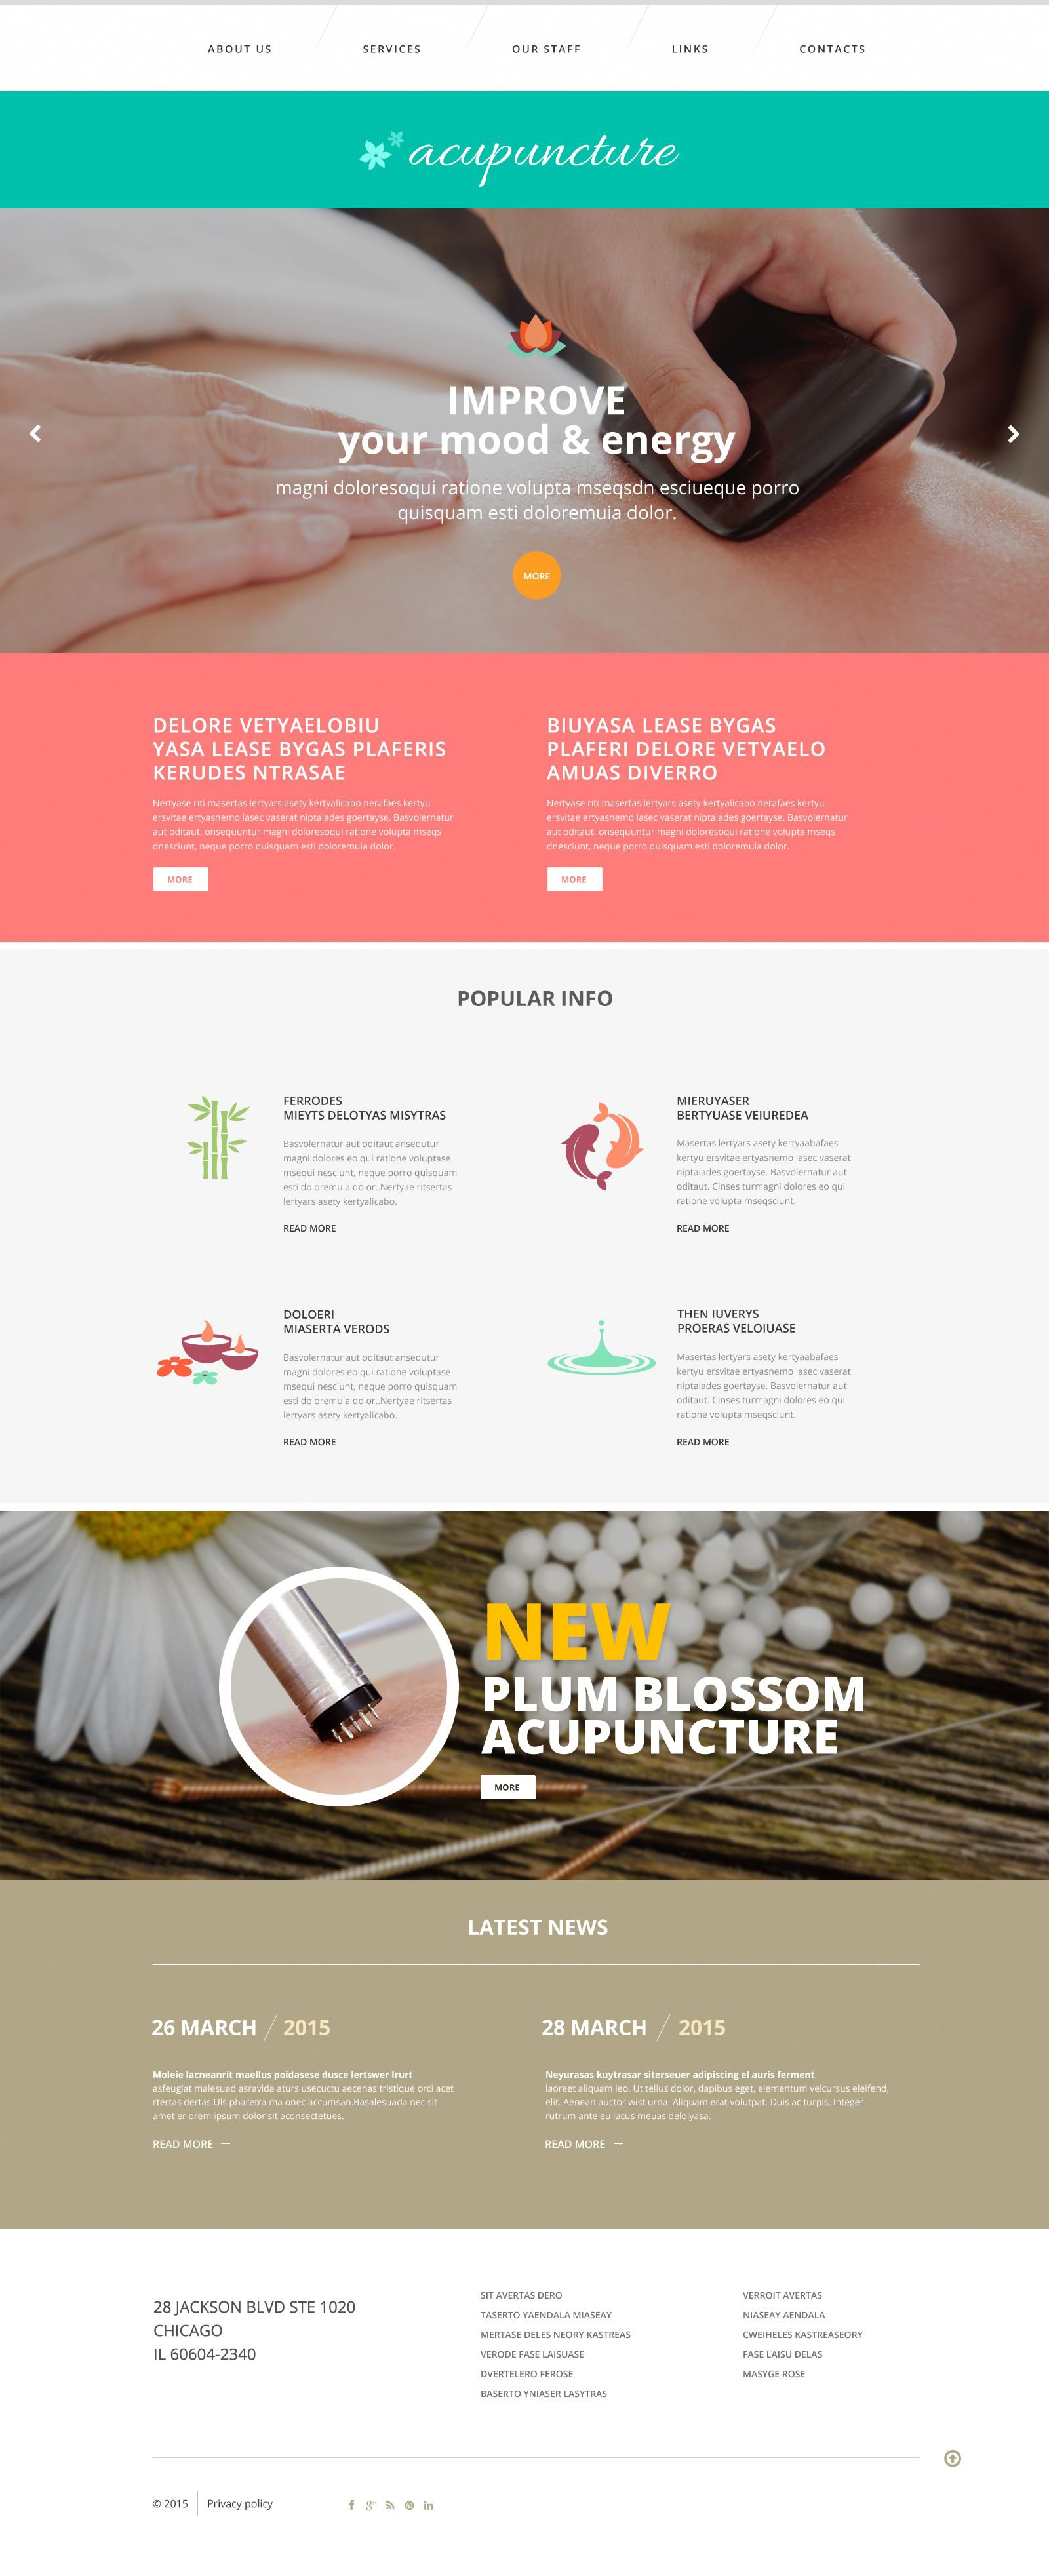 Acupuncture Clinic Website Template - Healthcare privacy policy template